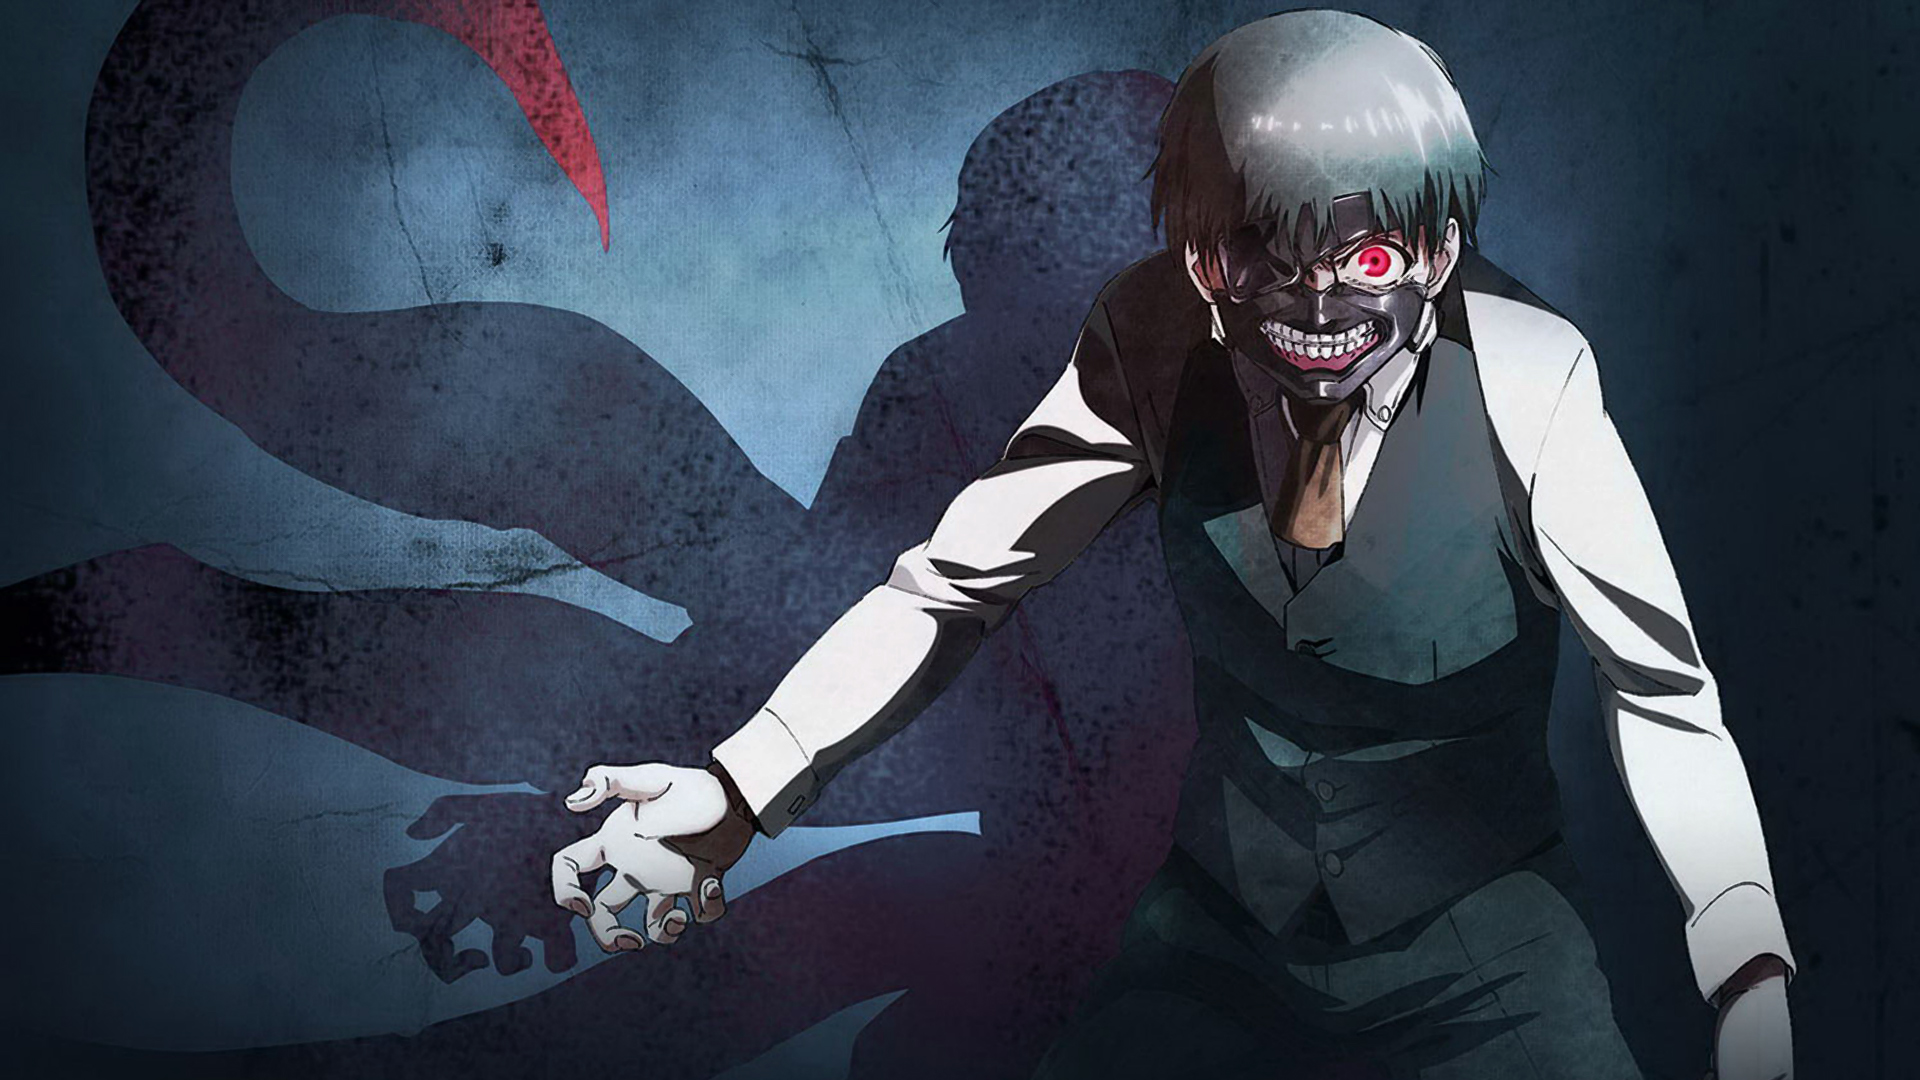 50 Tokyo Ghoul Kaneki Wallpaper On Wallpapersafari